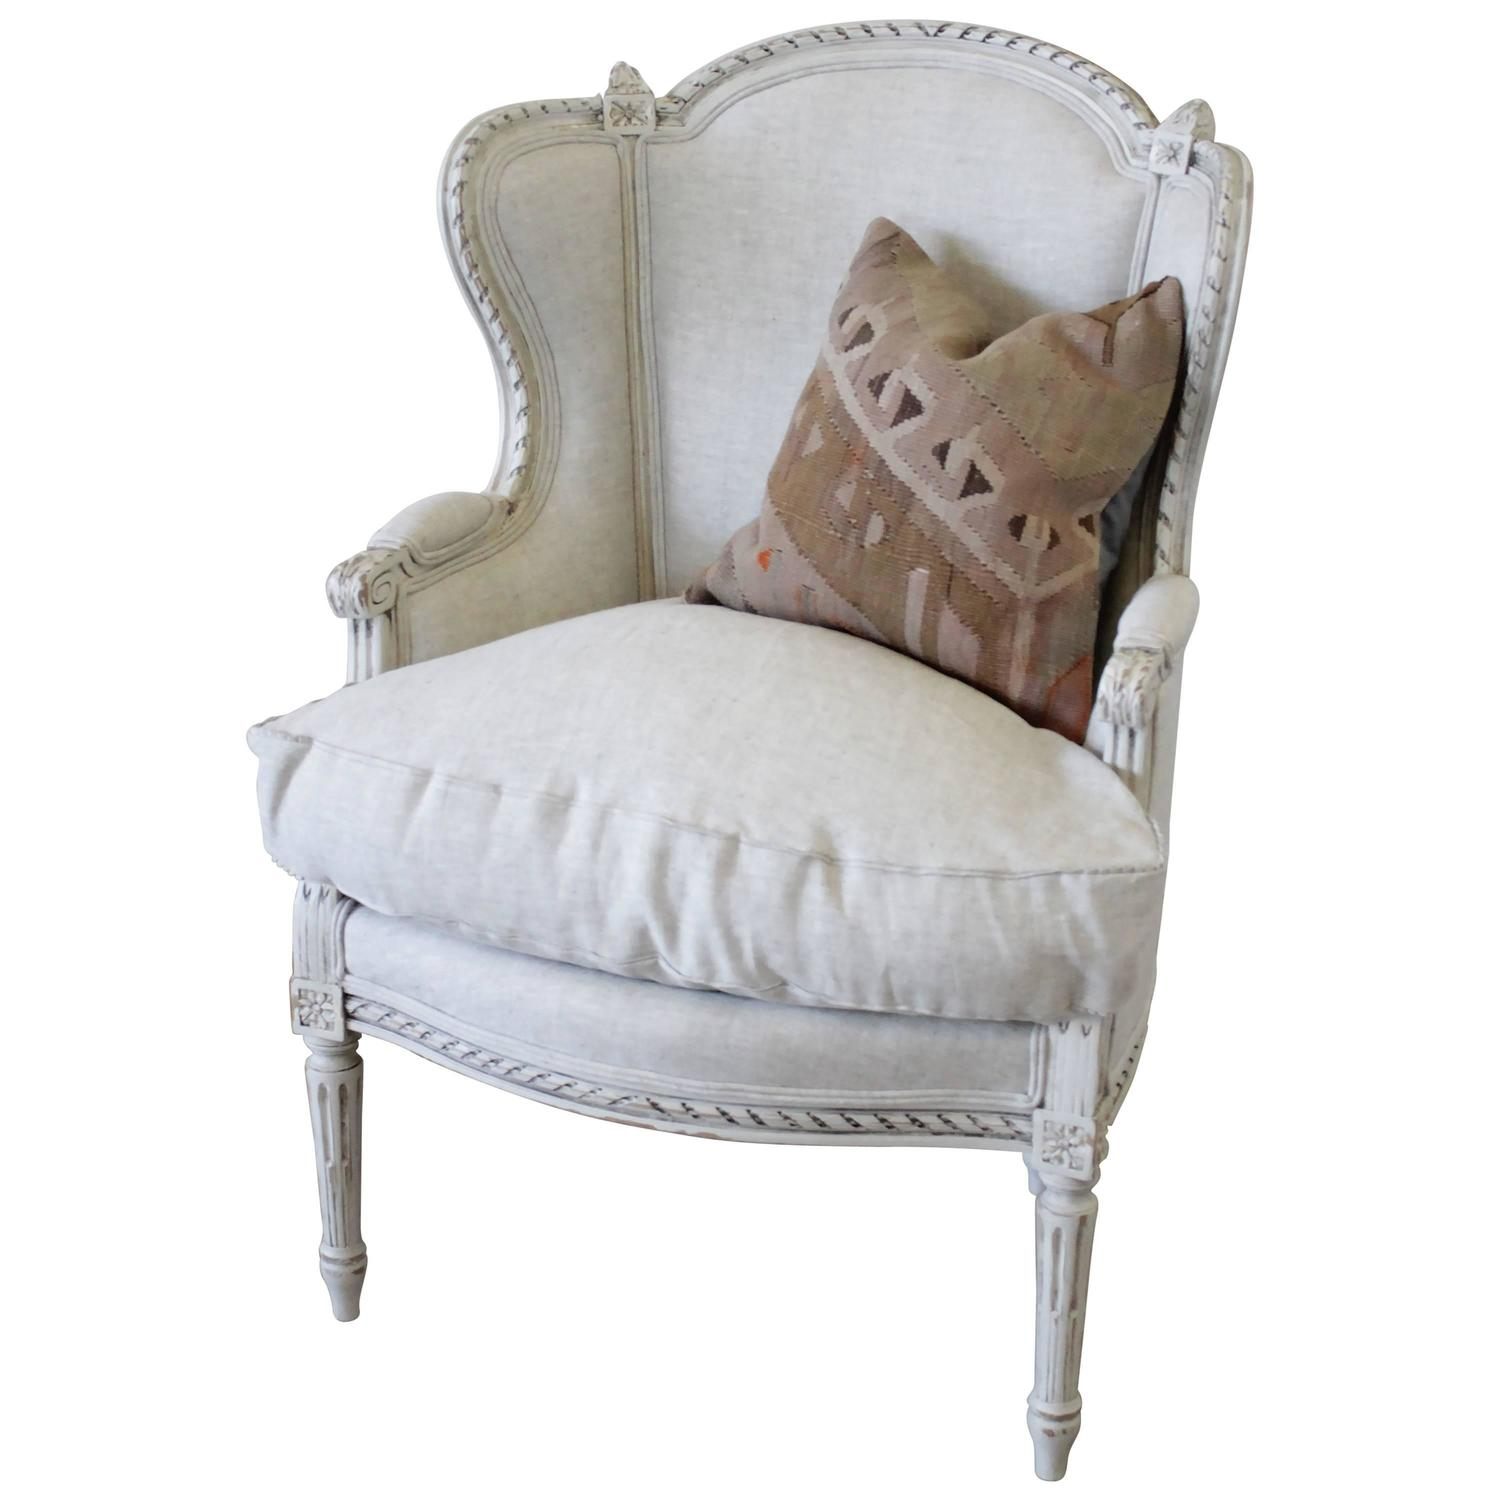 20th Century Painted Louis XVI Wing Chair in Natural Linen at 1stdibs